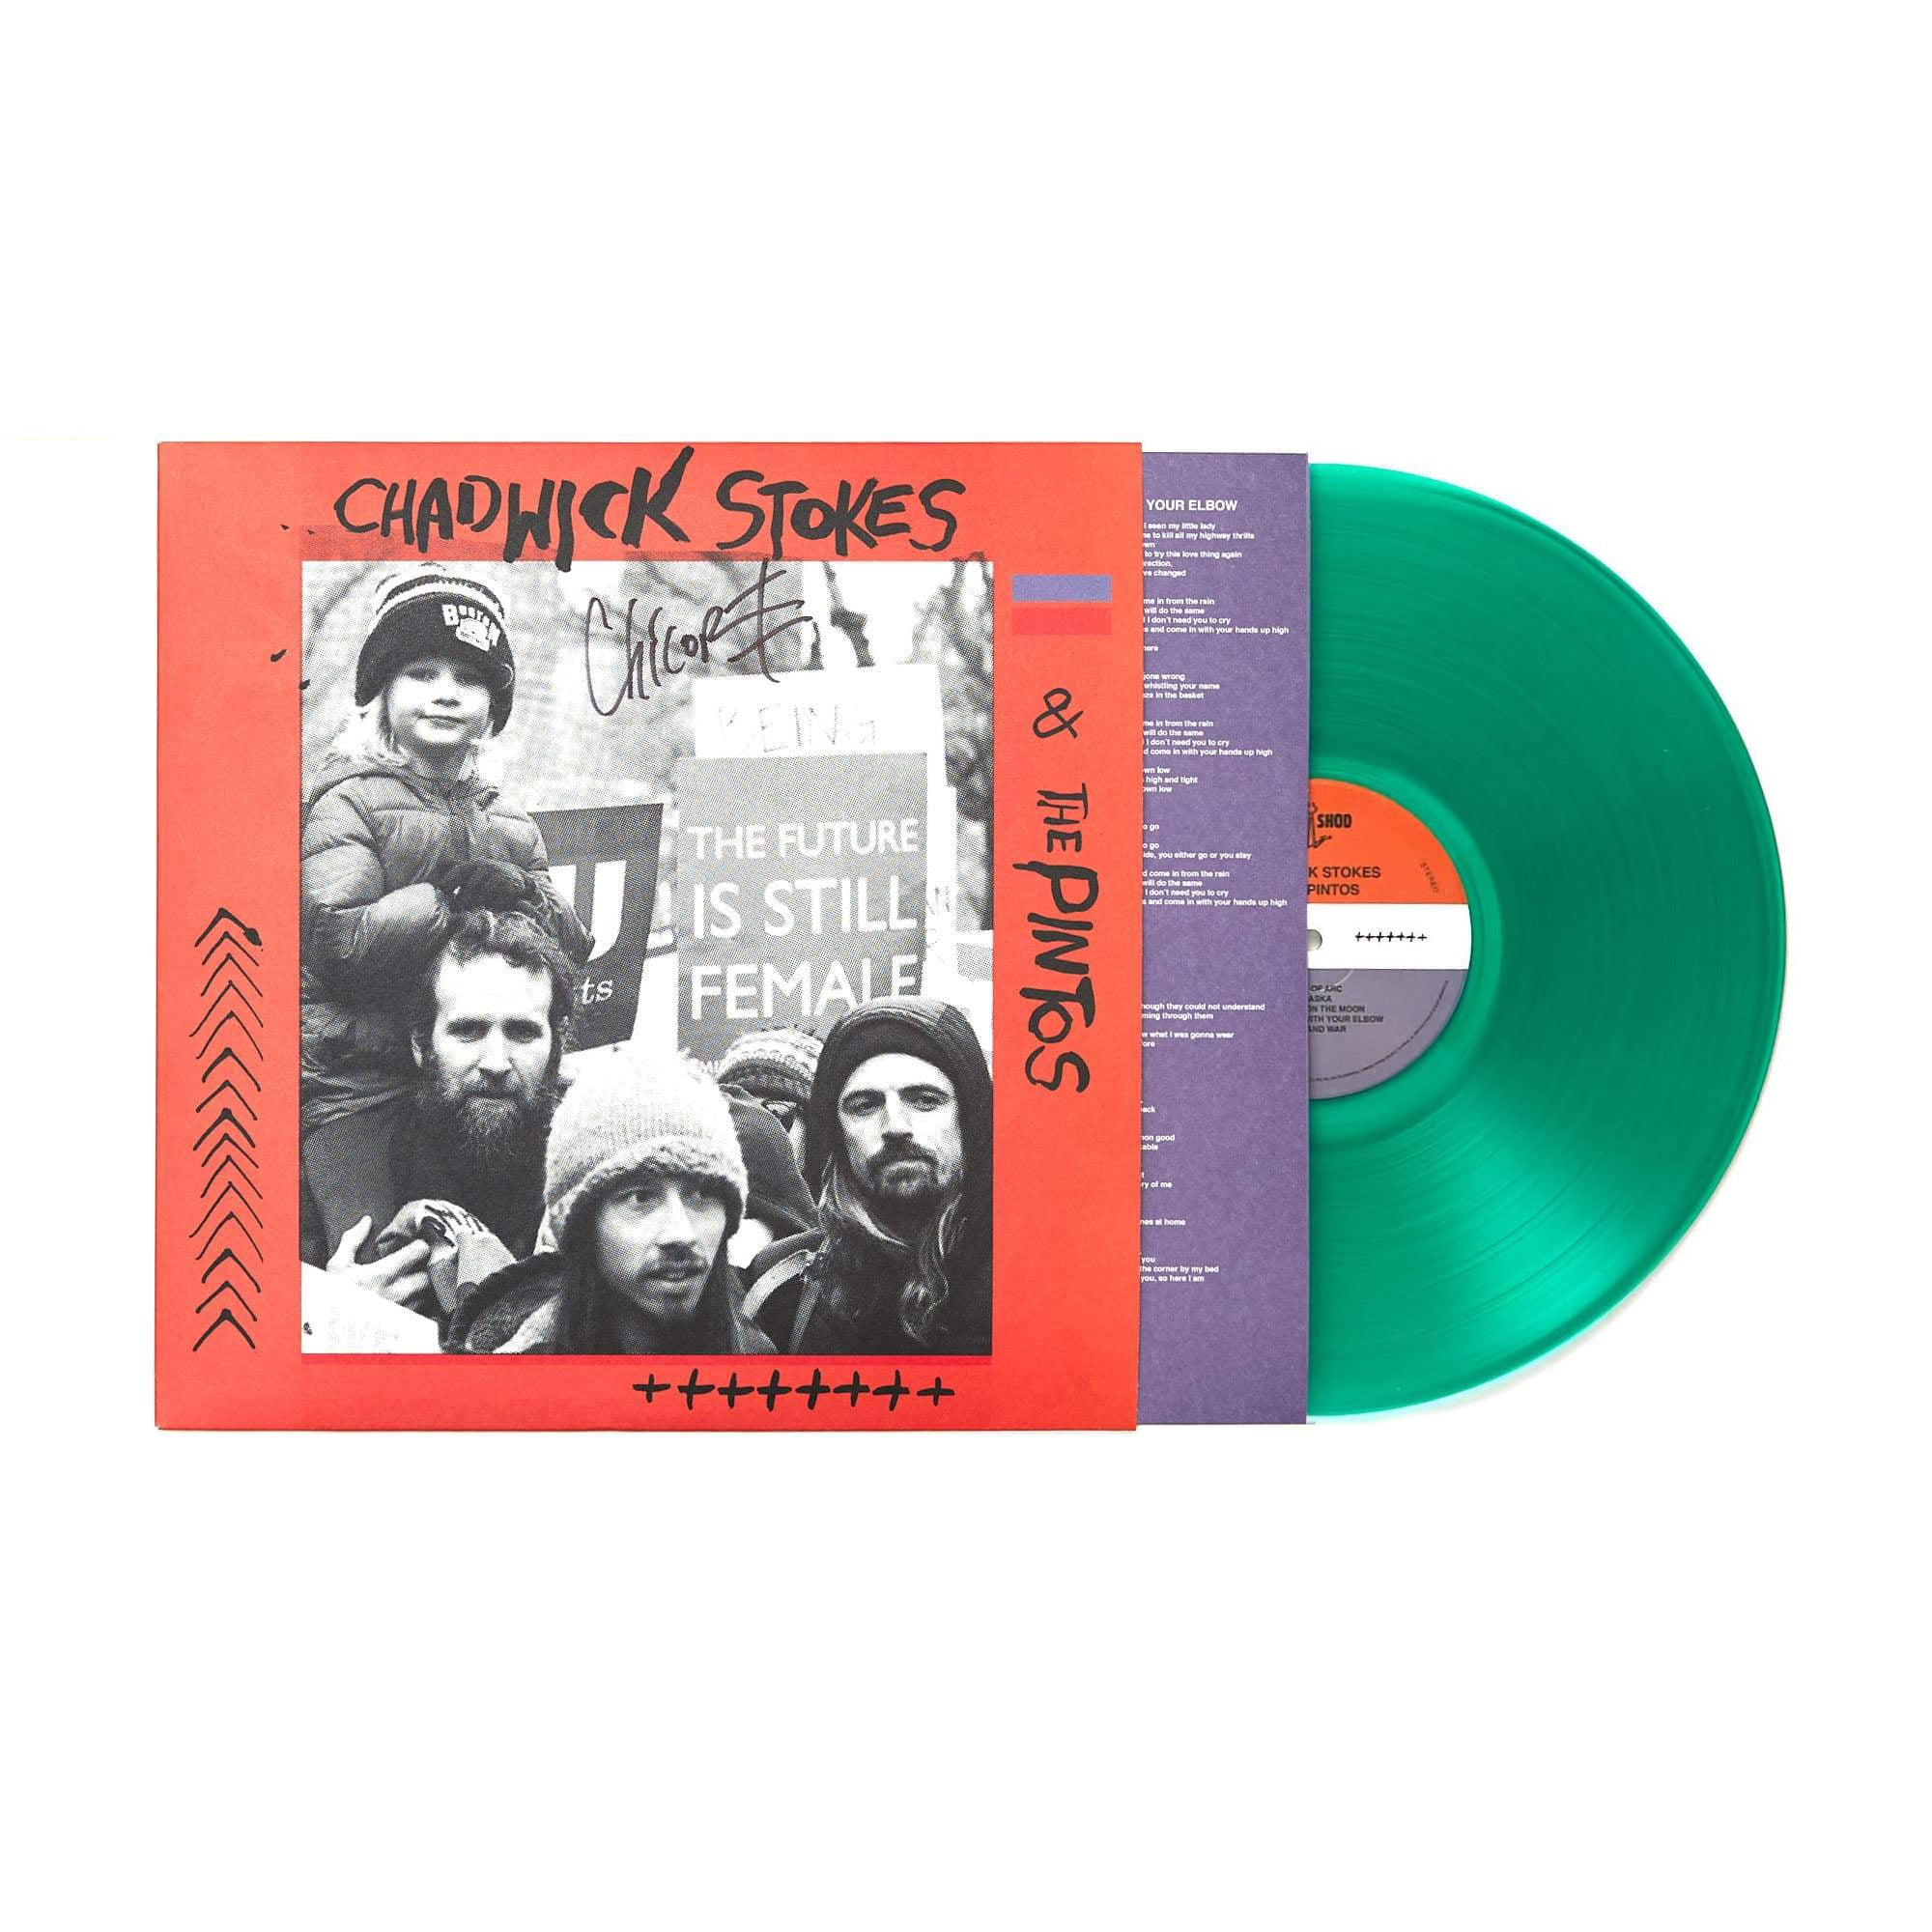 "Chadwick Stokes & The Pintos 'Self-Titled' 12"" Vinyl LP - Translucent Green"